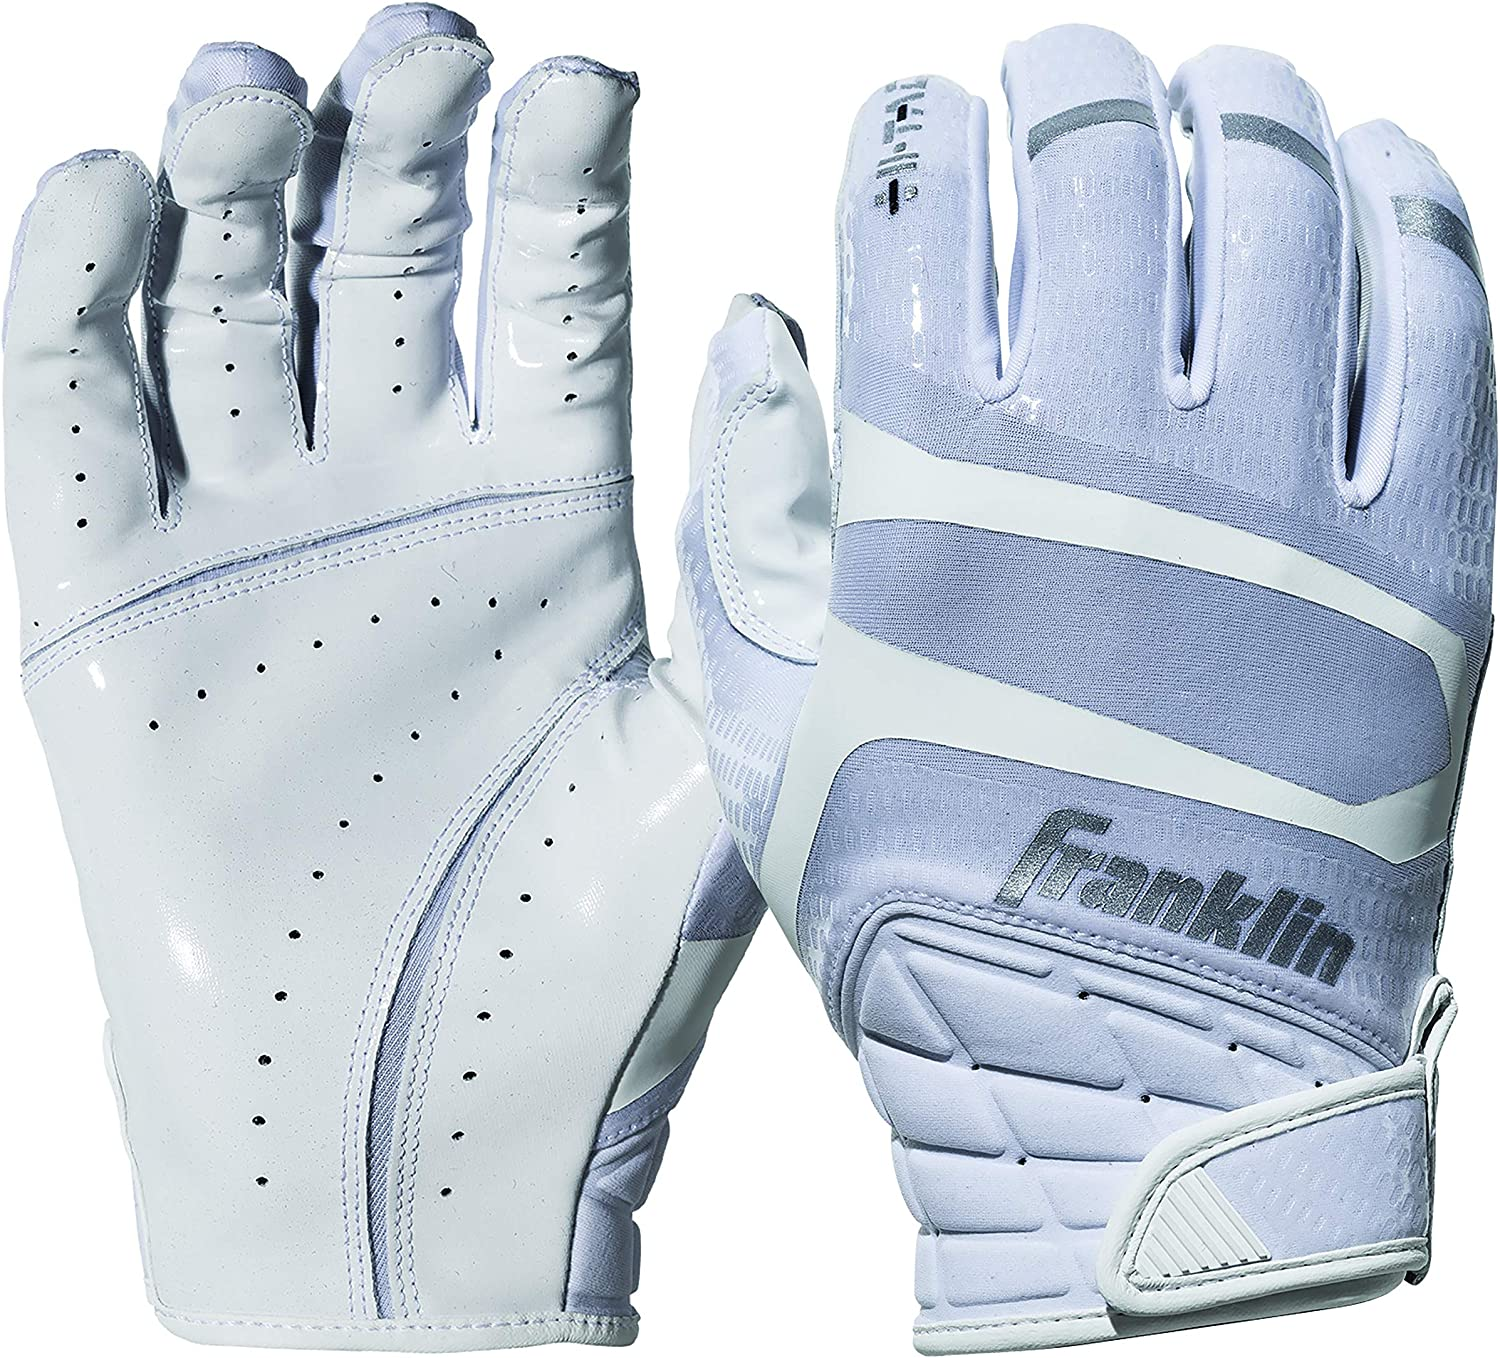 Franklin Sports Football Receiver Gloves Extra-Grip Premium Football Gloves for All Ages Adult and Youth Football Receiver Gloves